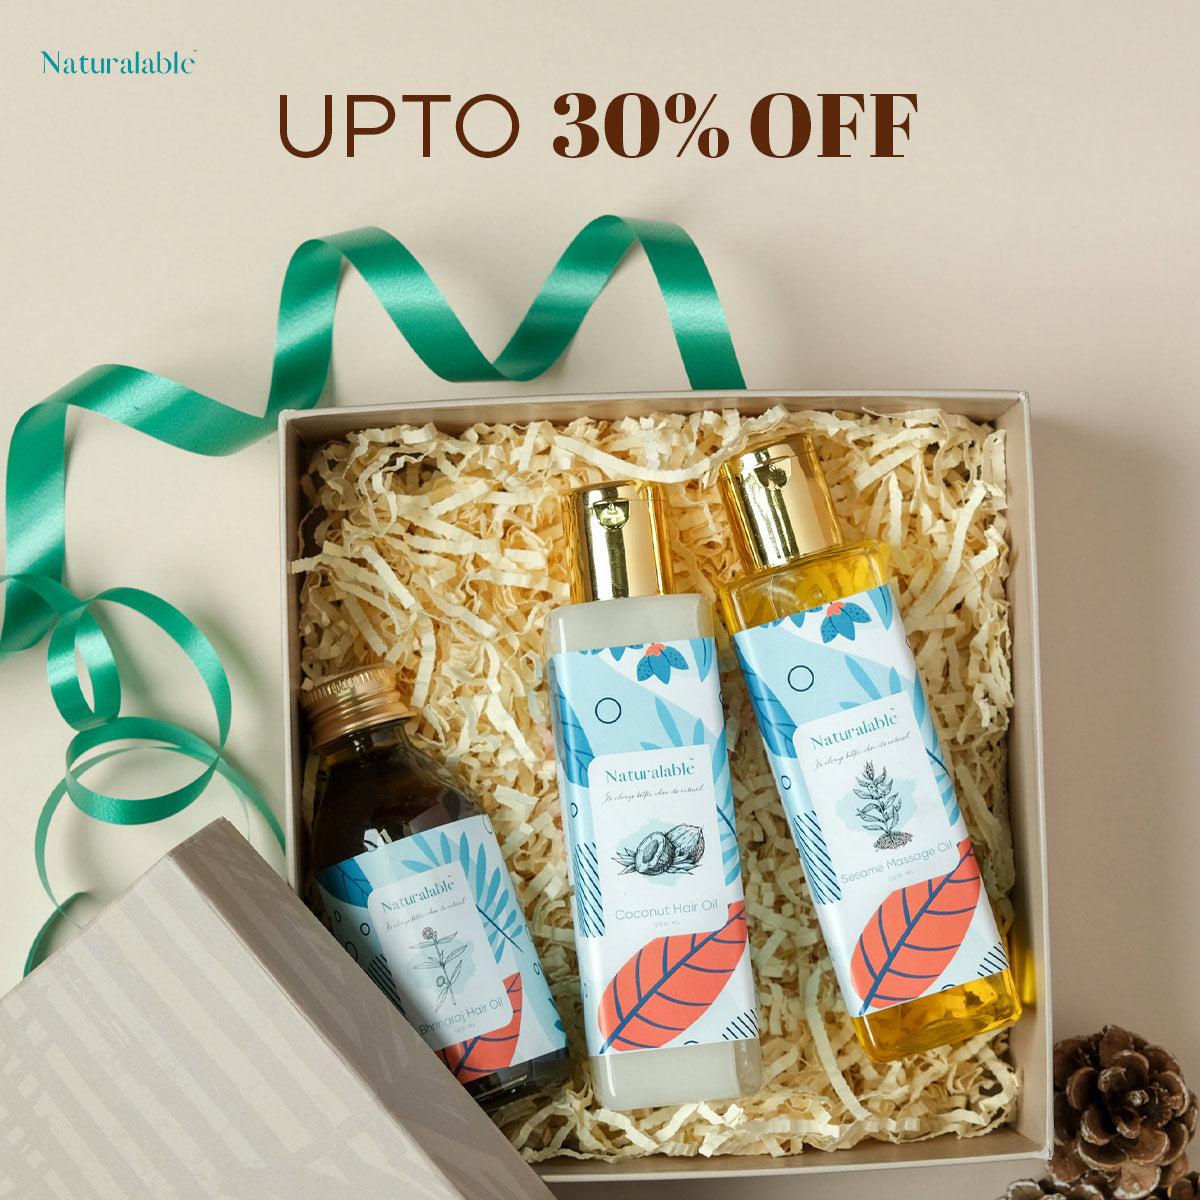 Naturalable Upto 30% Off